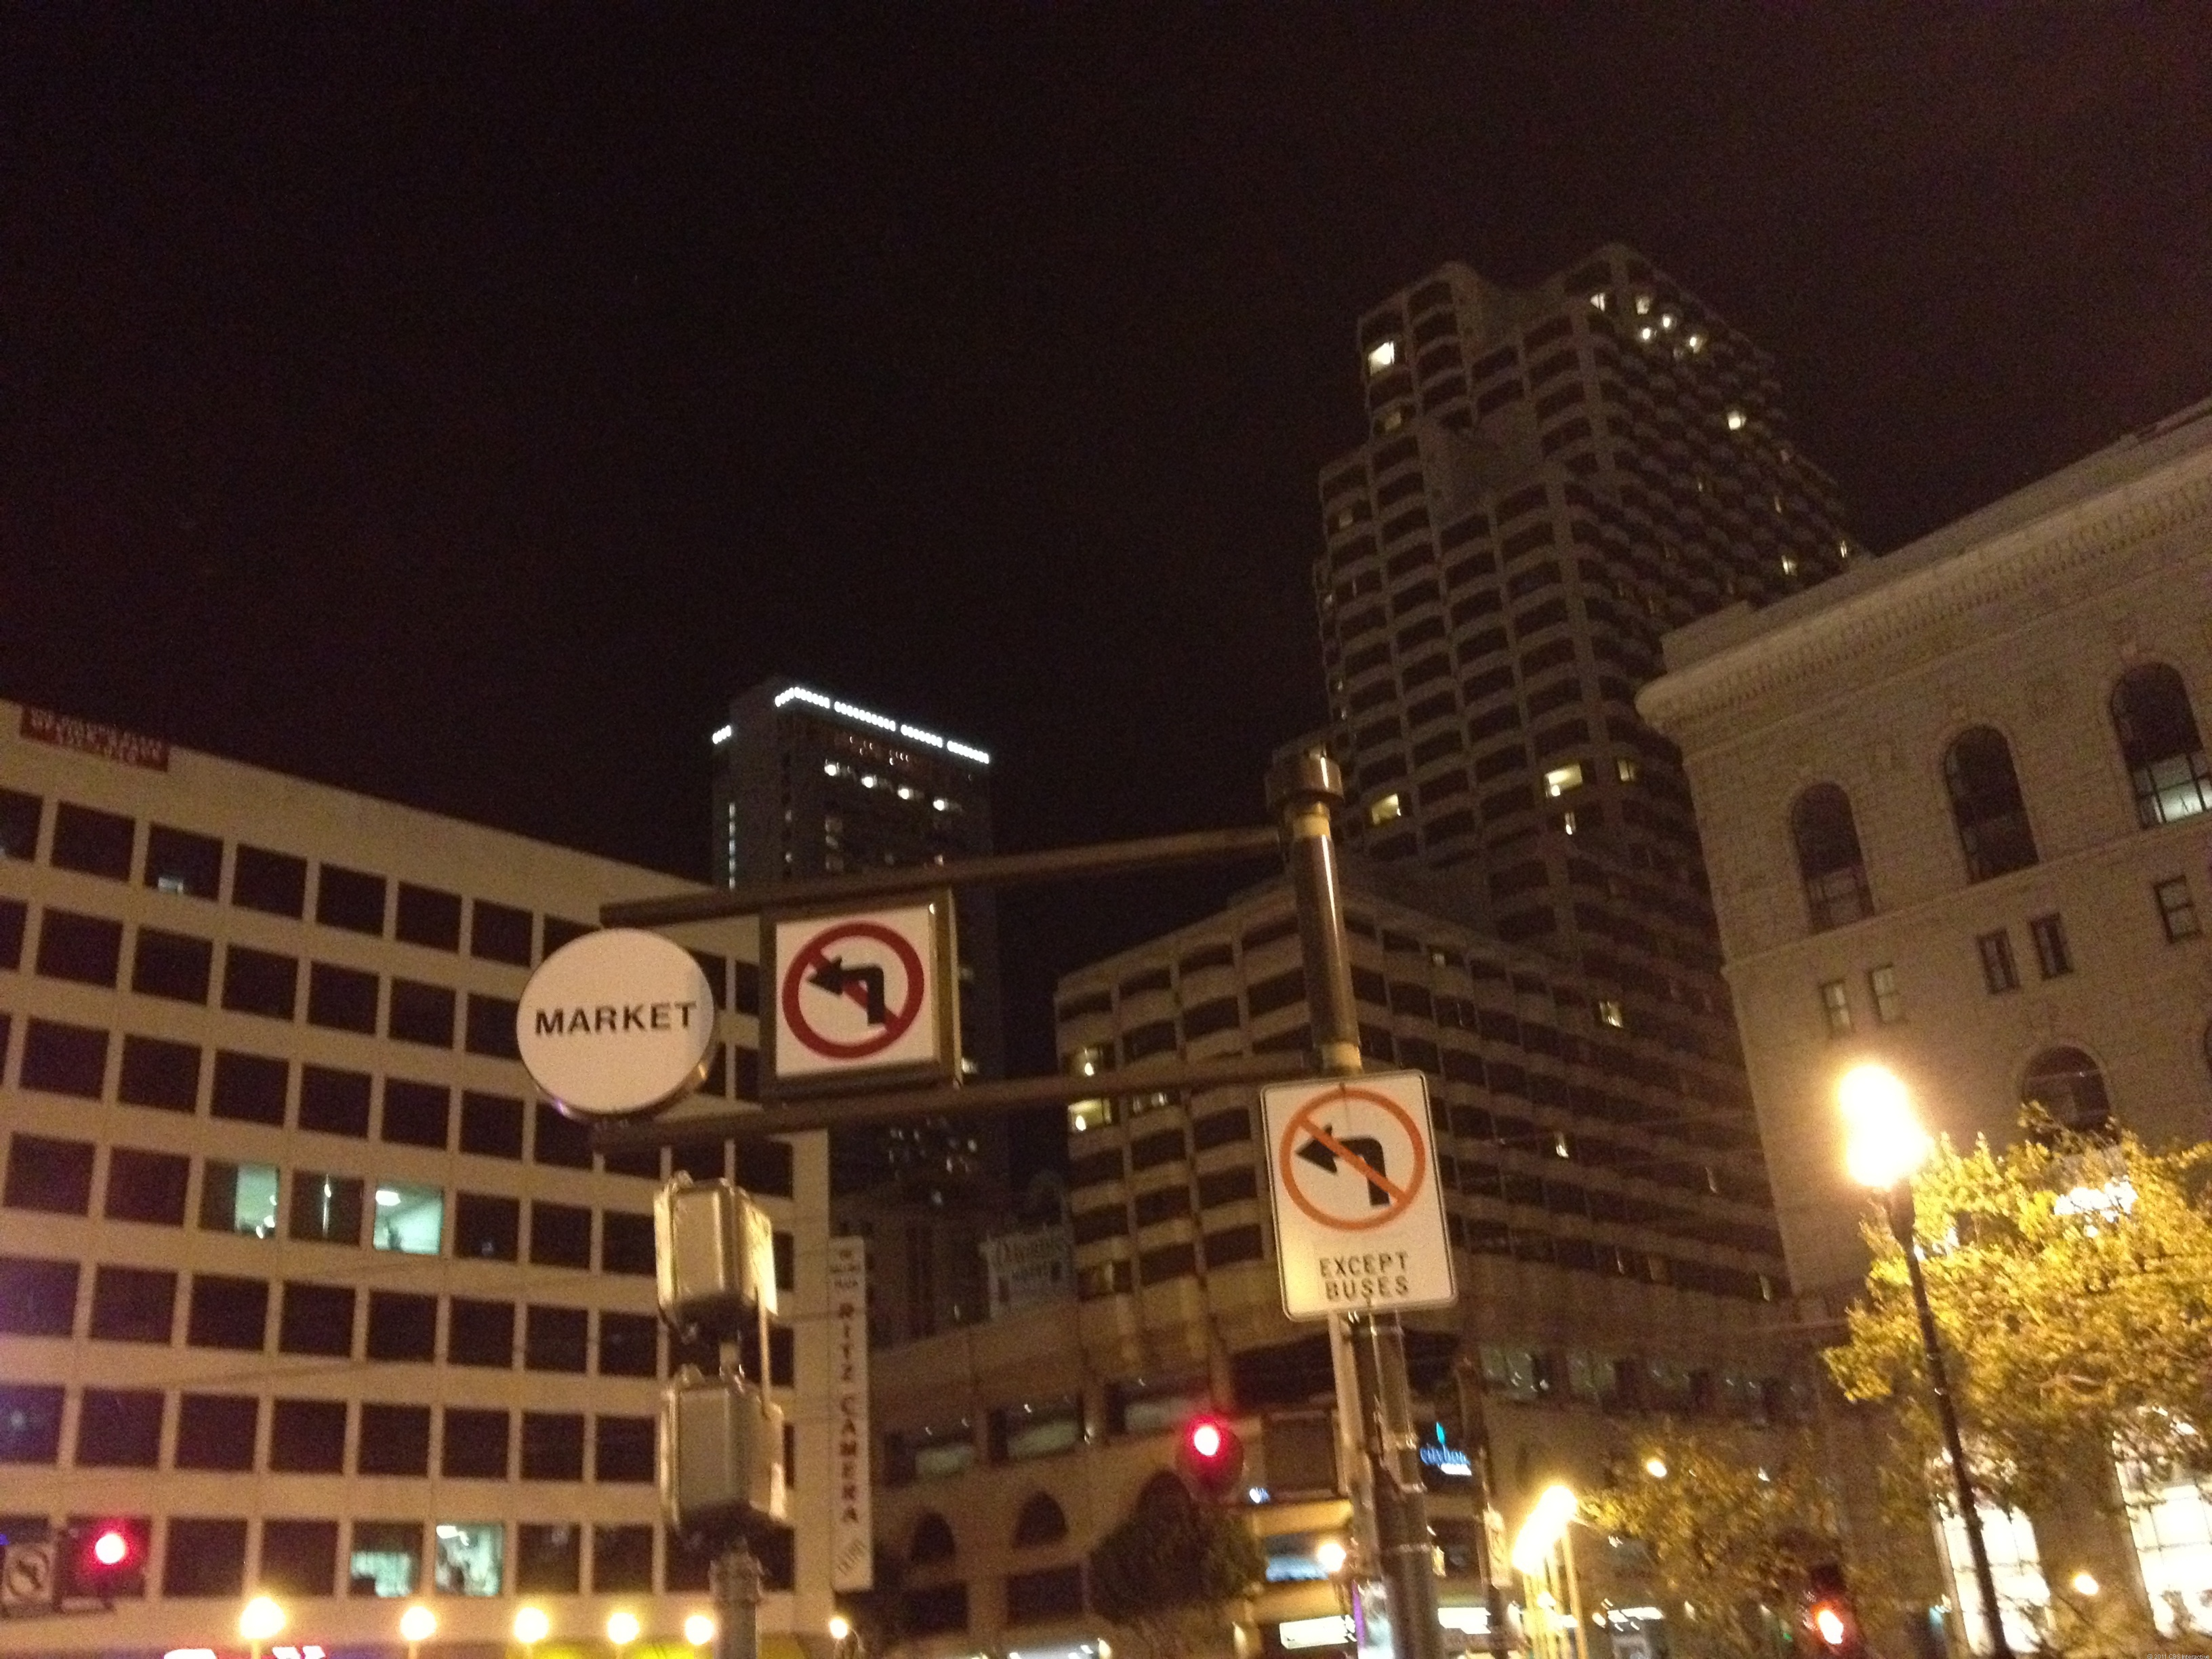 Downtown at night: iPhone 4S